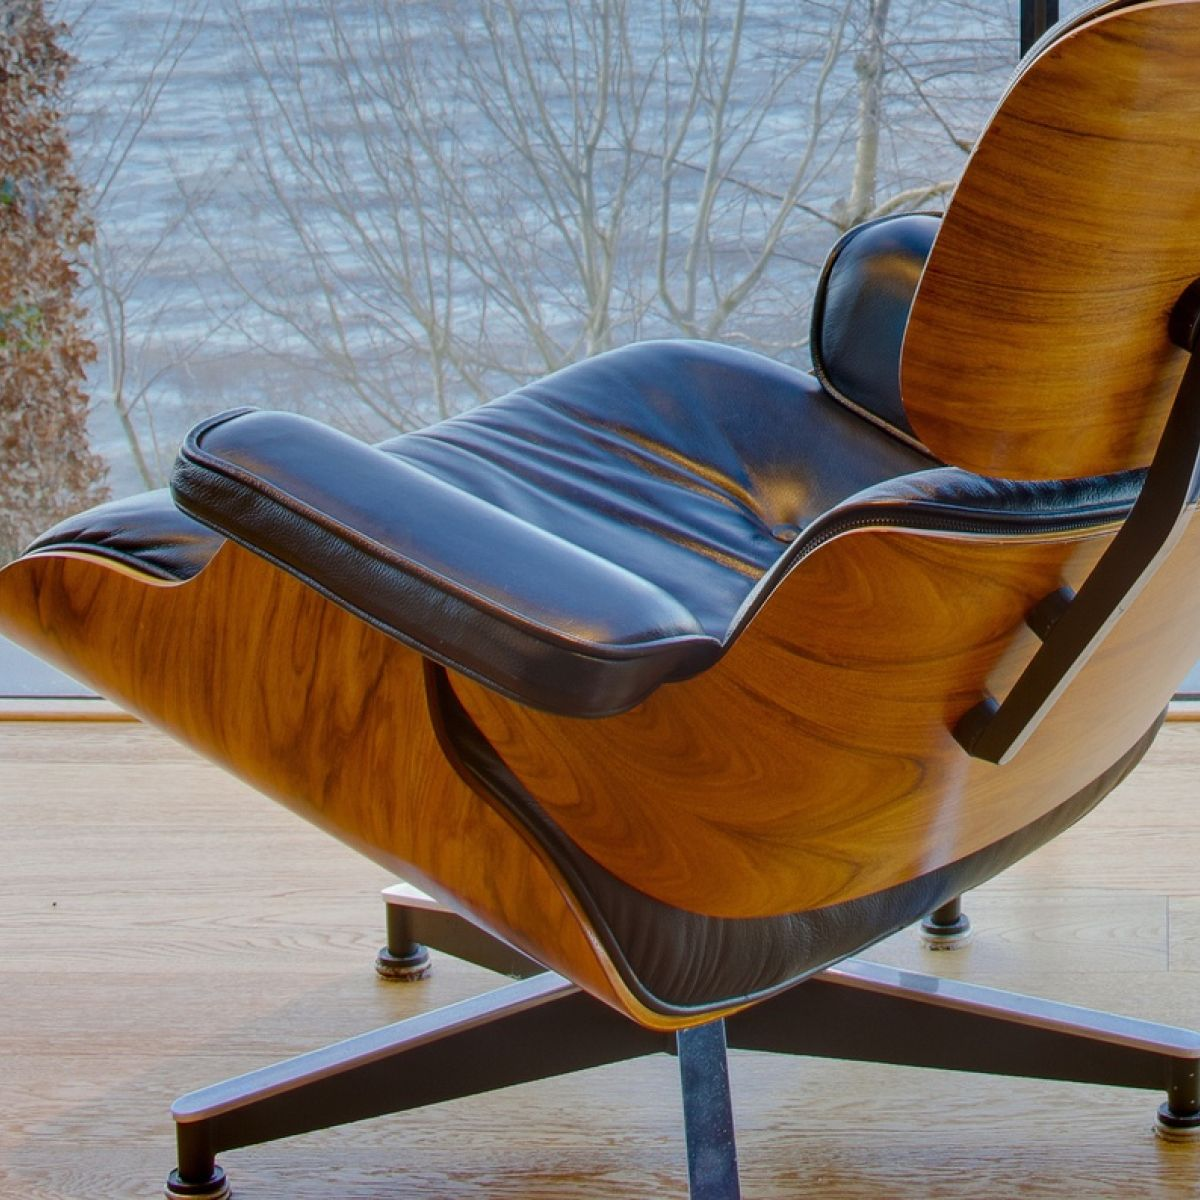 Vitra Lounge Chair Replica ireland: a safe haven for furniture fakes?